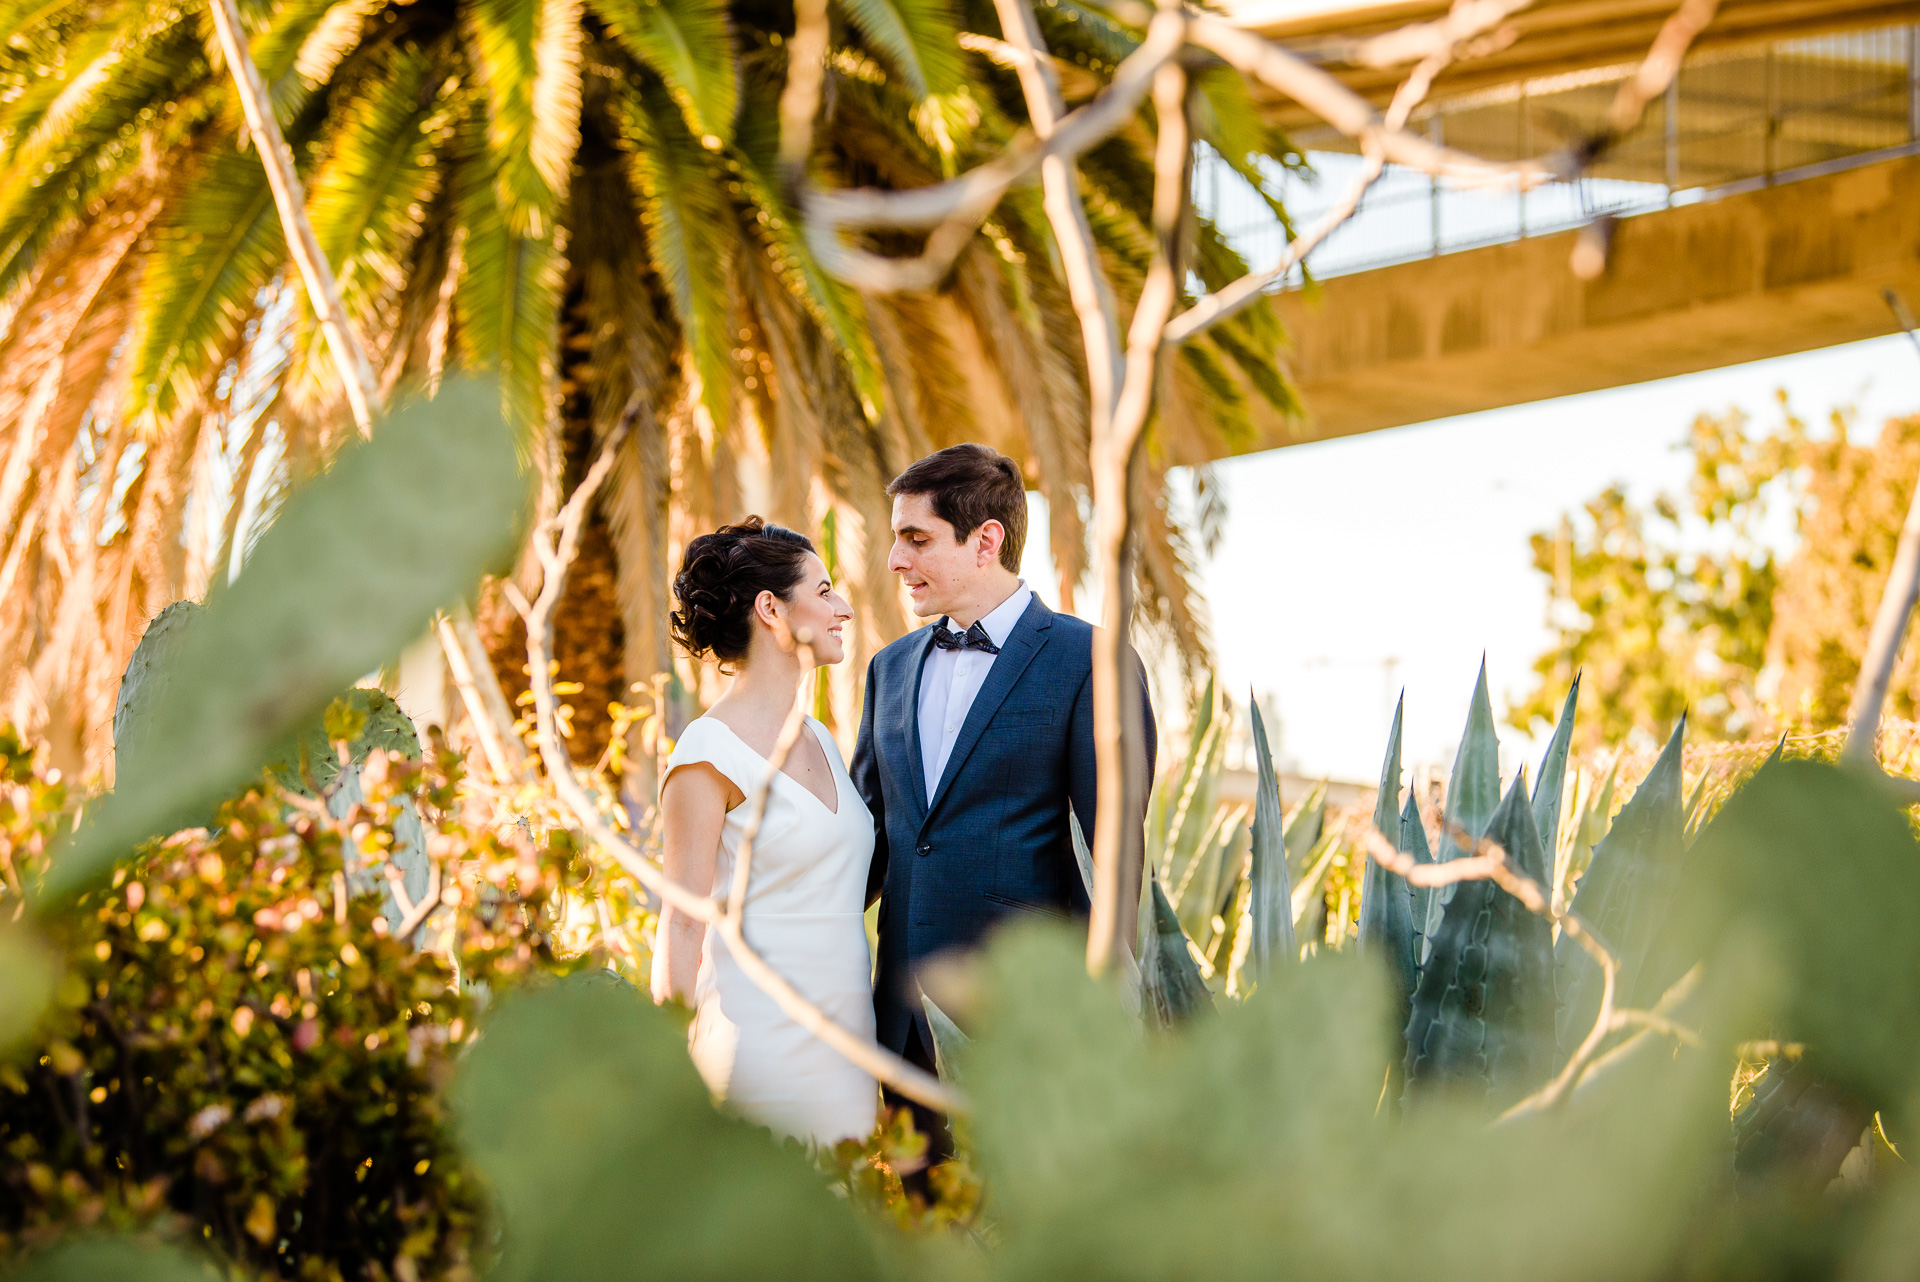 12.29.17 - Michelle and Tommaso Wedding - San Diego Courthouse -  Paul Douda Photography - 062.jpg